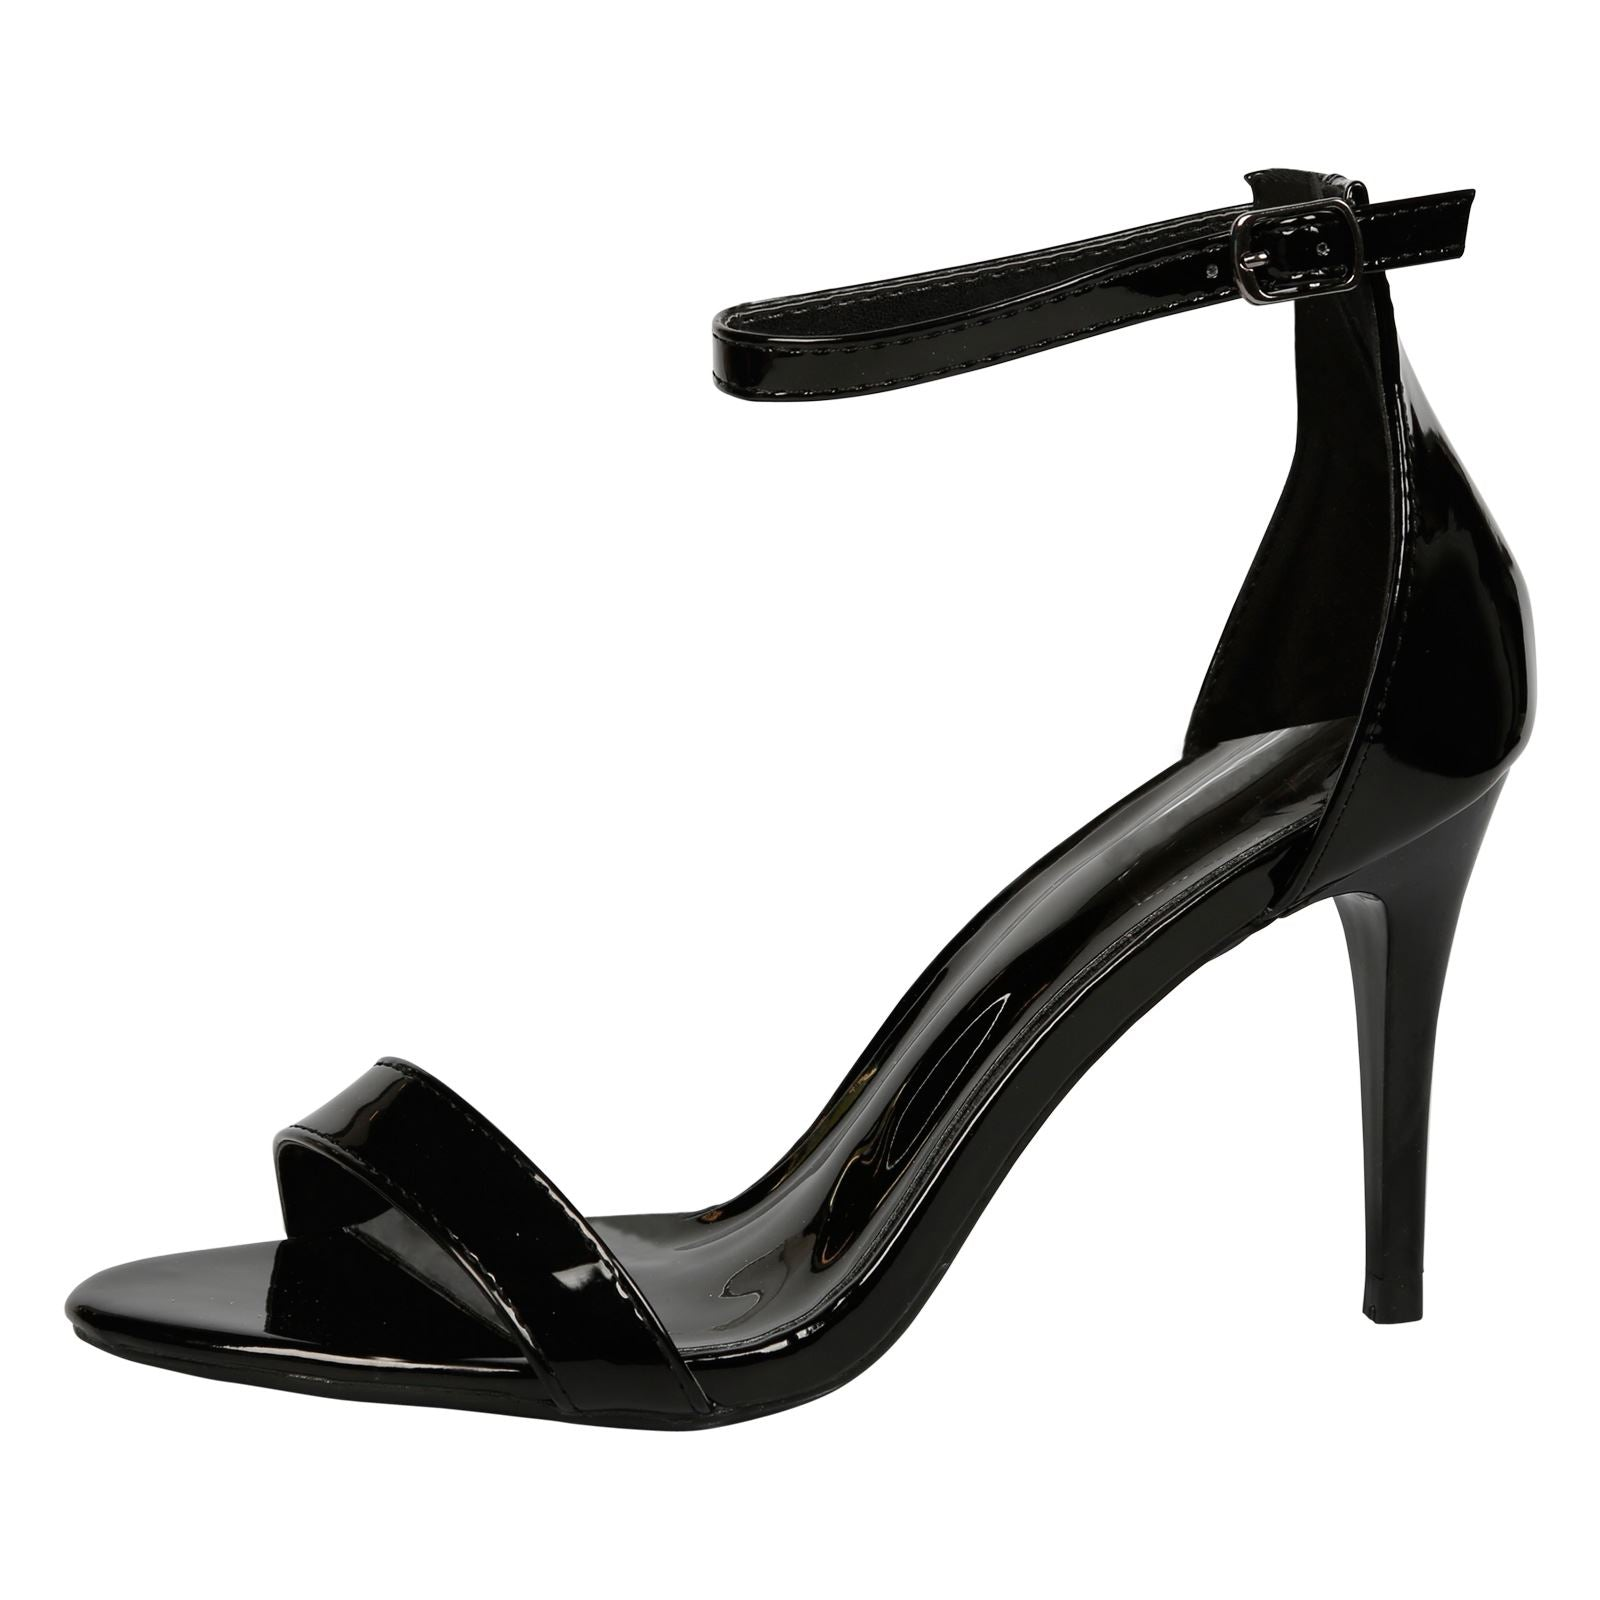 Ellen Stiletto Heel Ankle Strap Sandals in Black Patent